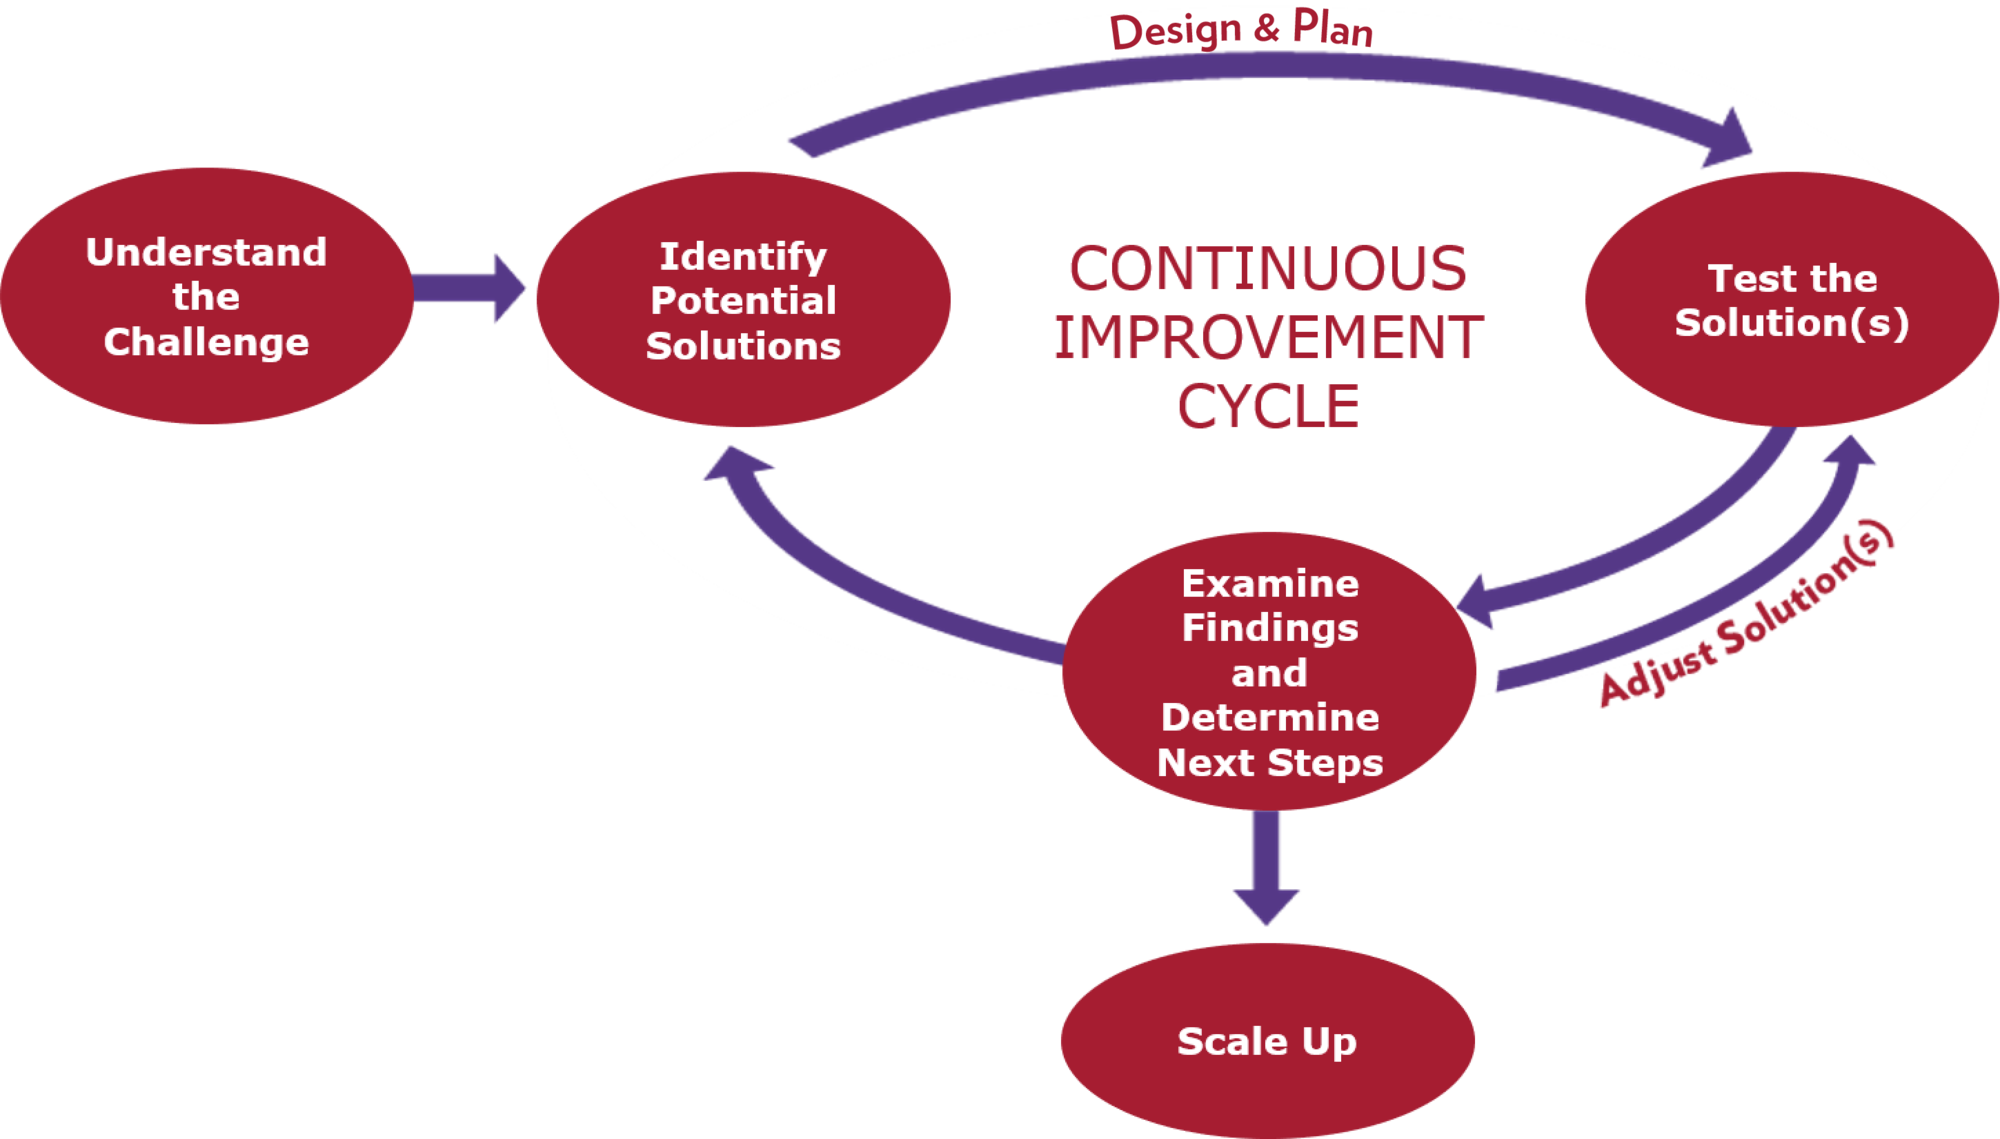 continuous improvement cycle infographic